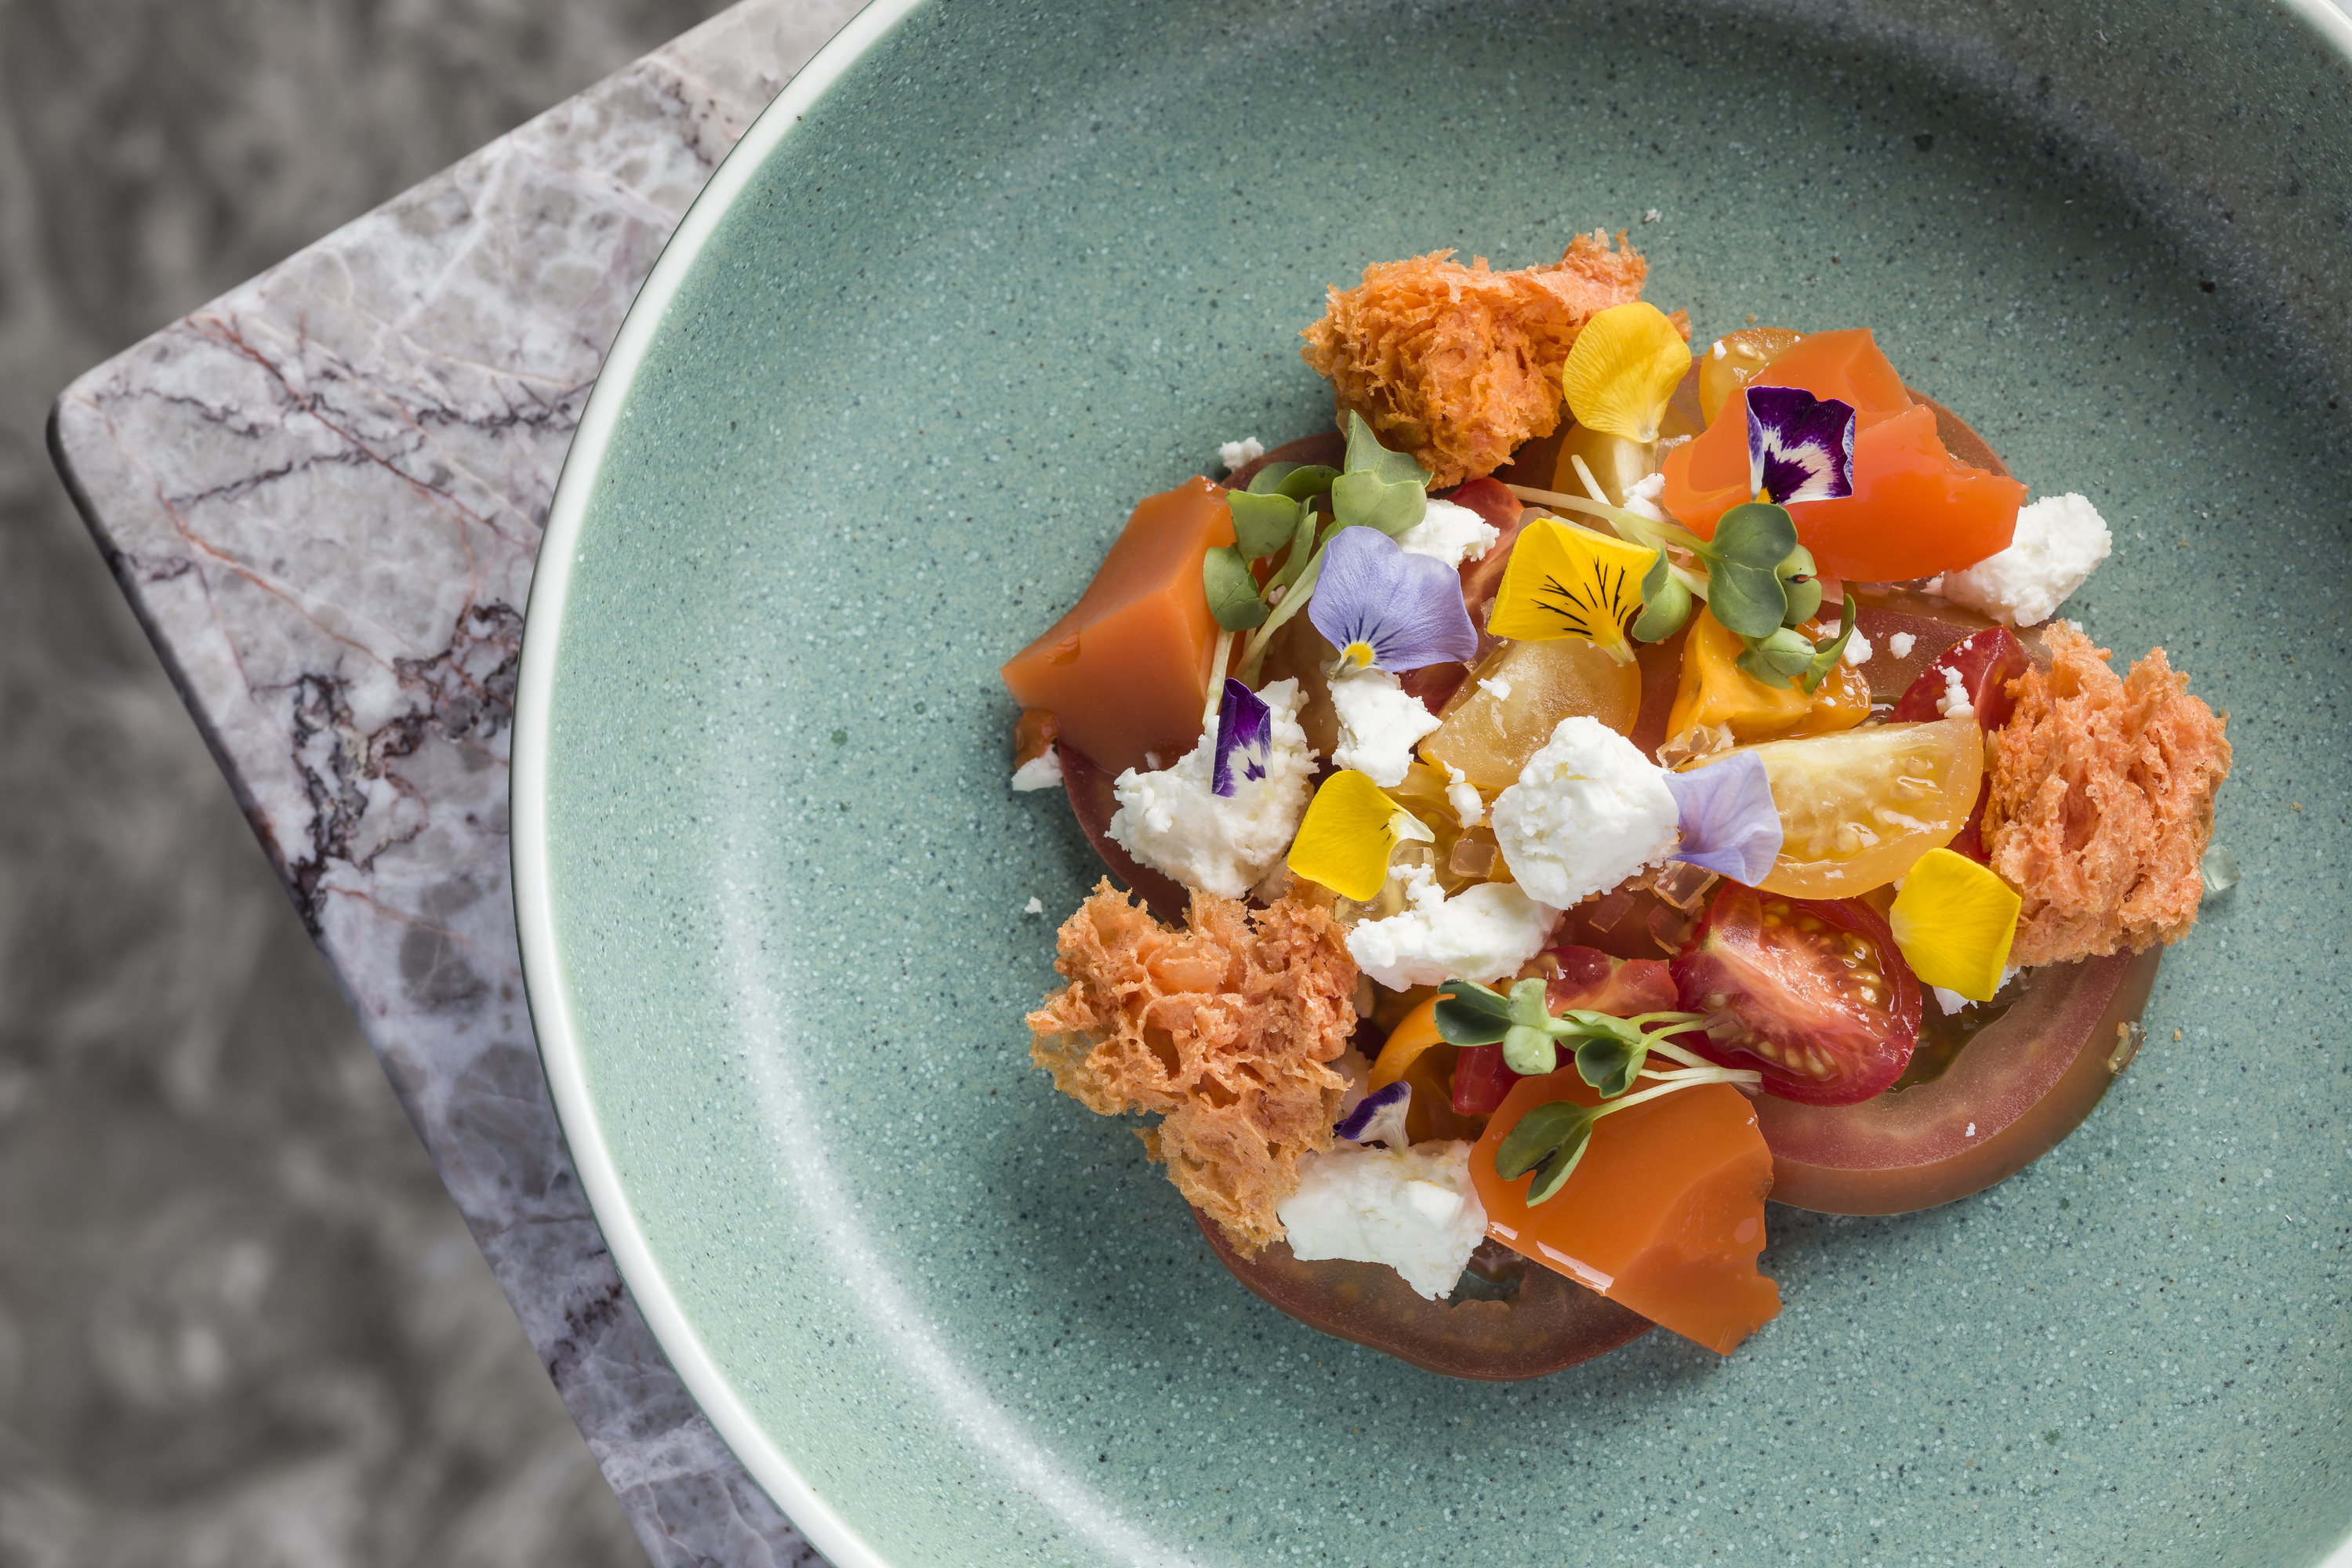 Ignis - cold-smoked tomato with feta cheese and kombu